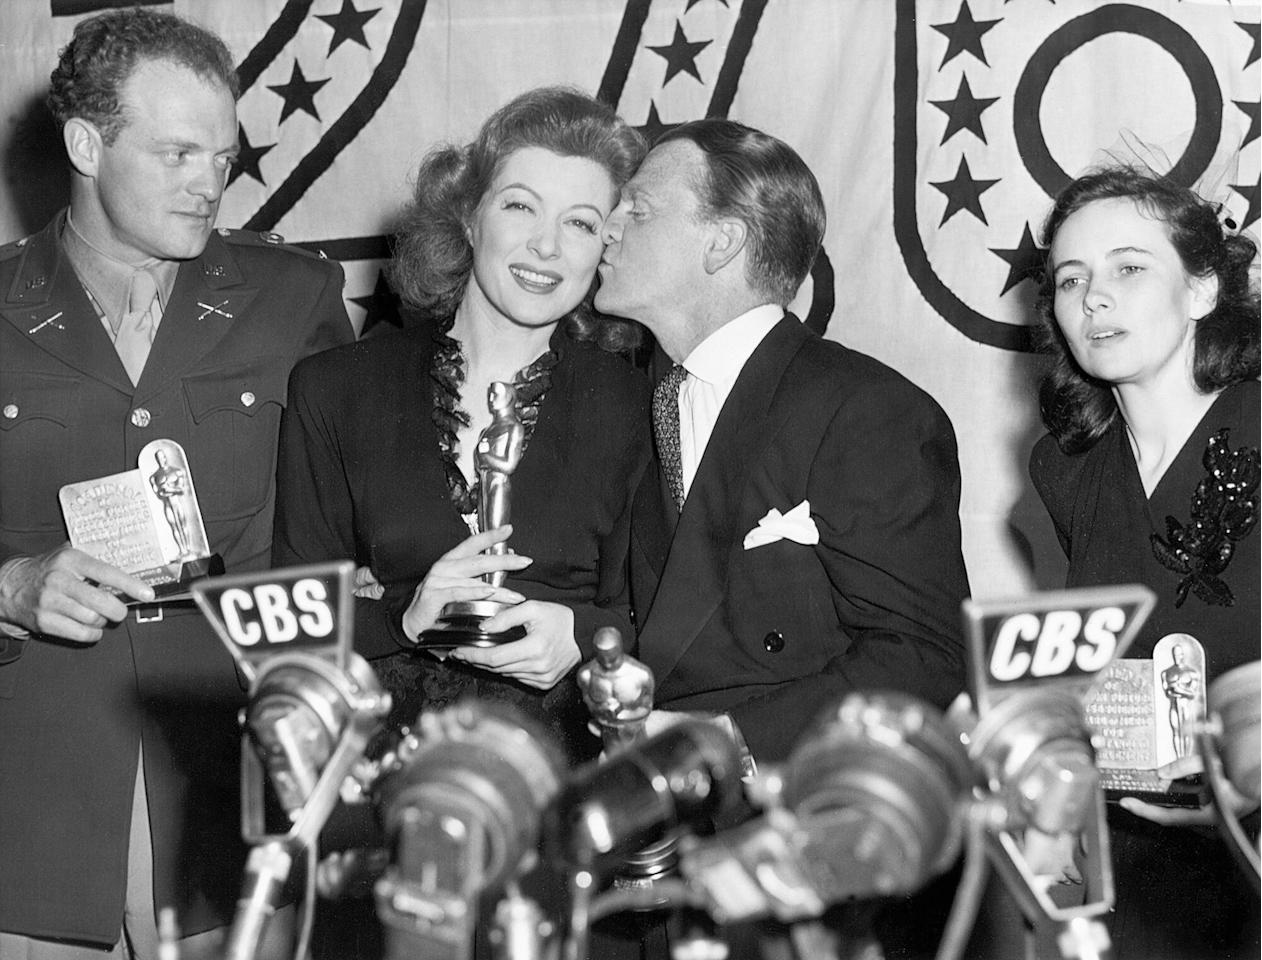 Greer Garson set a record that has yet to be broken with her very, very long acceptance speech after winning the Best Actress award for her performance in <em>Mrs. Miniver</em>. The lengthy speech ran for seven minutes, and many point to it as the catalyst for the modern introduction of the time limit.